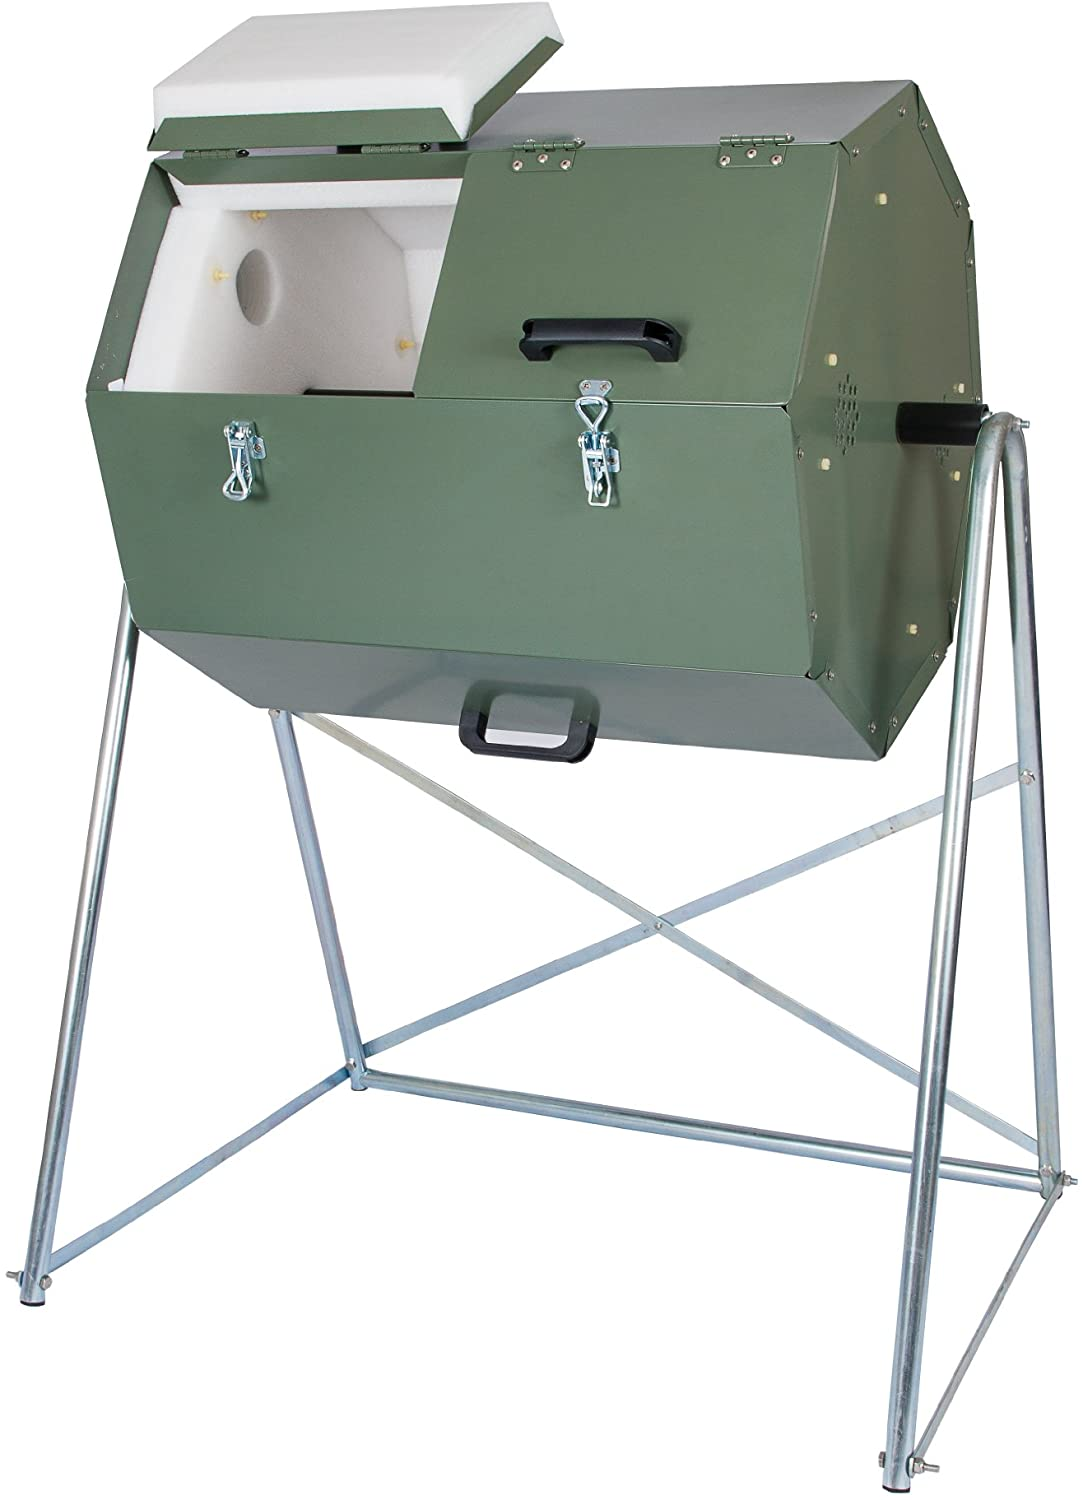 Joraform Compost Tumbler JK 125 : Best All Around Option